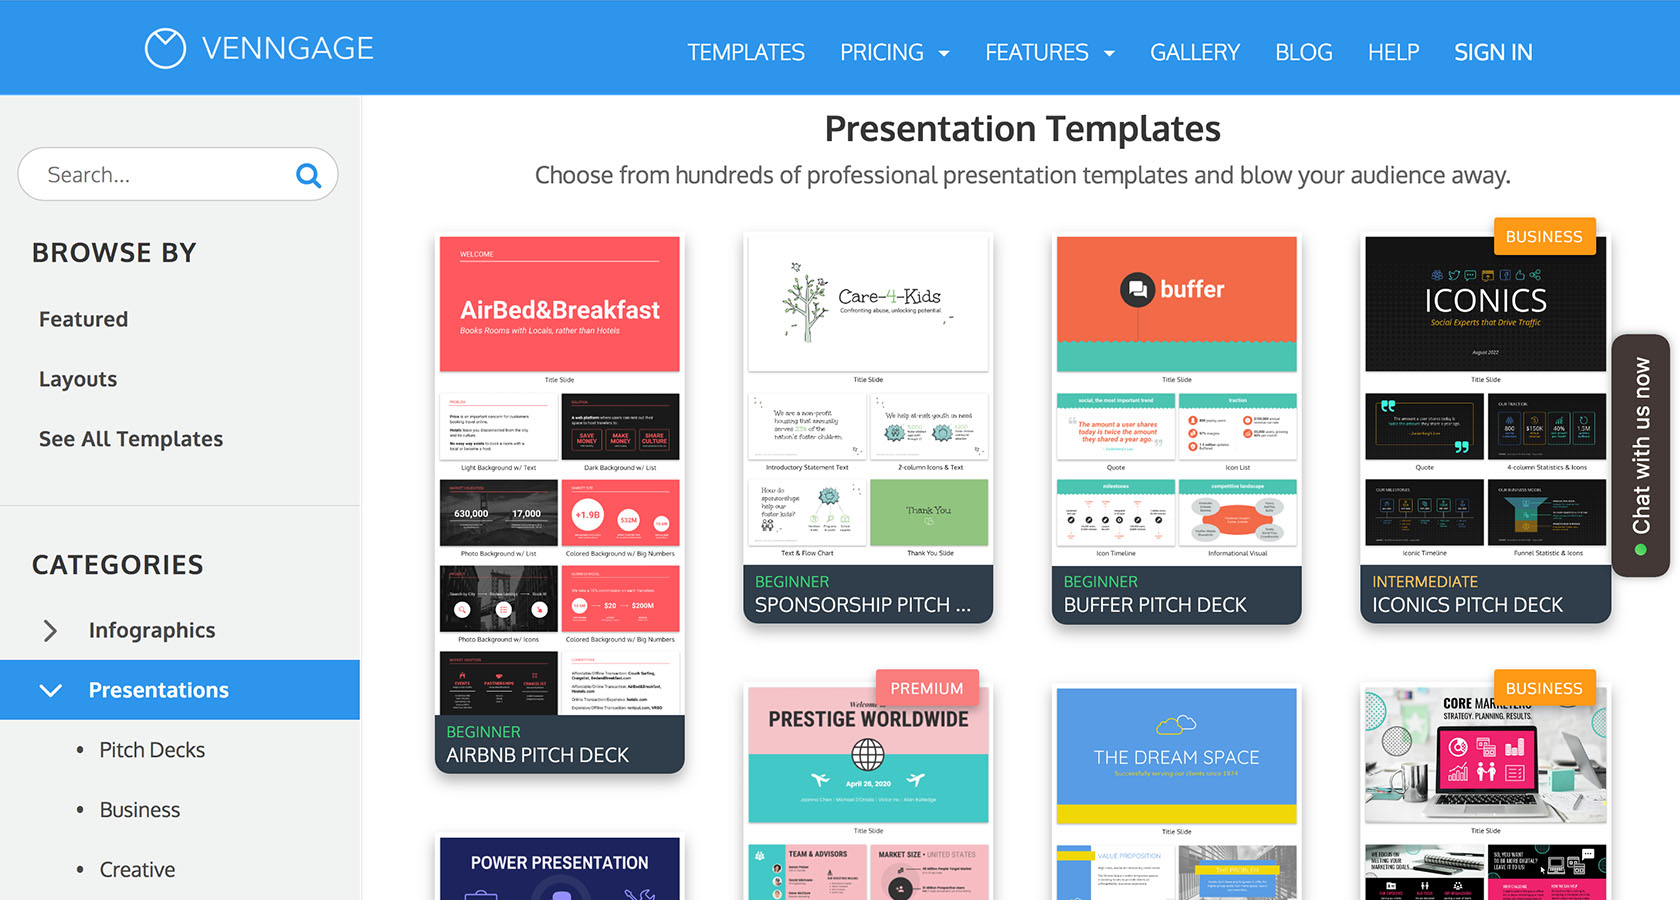 Presentation templates are a good start to great presentation design